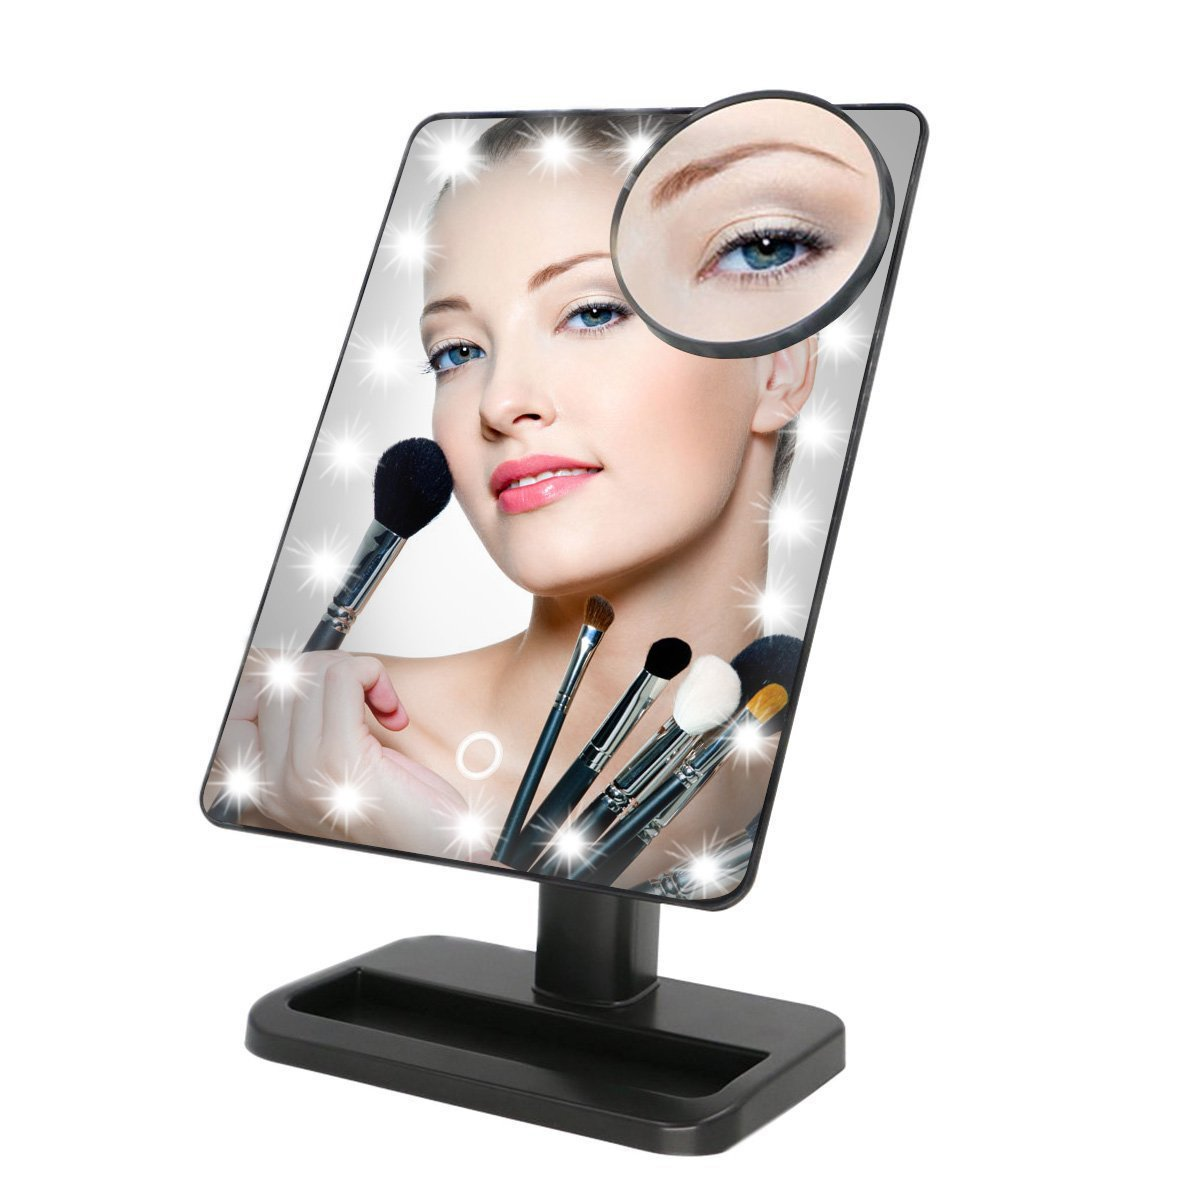 20LED Touch Light Illuminated Cosmetic Desktop Vanity Mirror Beauty Tabletop Mirrors For Lady Women Makeup with Removable 10x Magnifying Mirrors 180 degree rotation